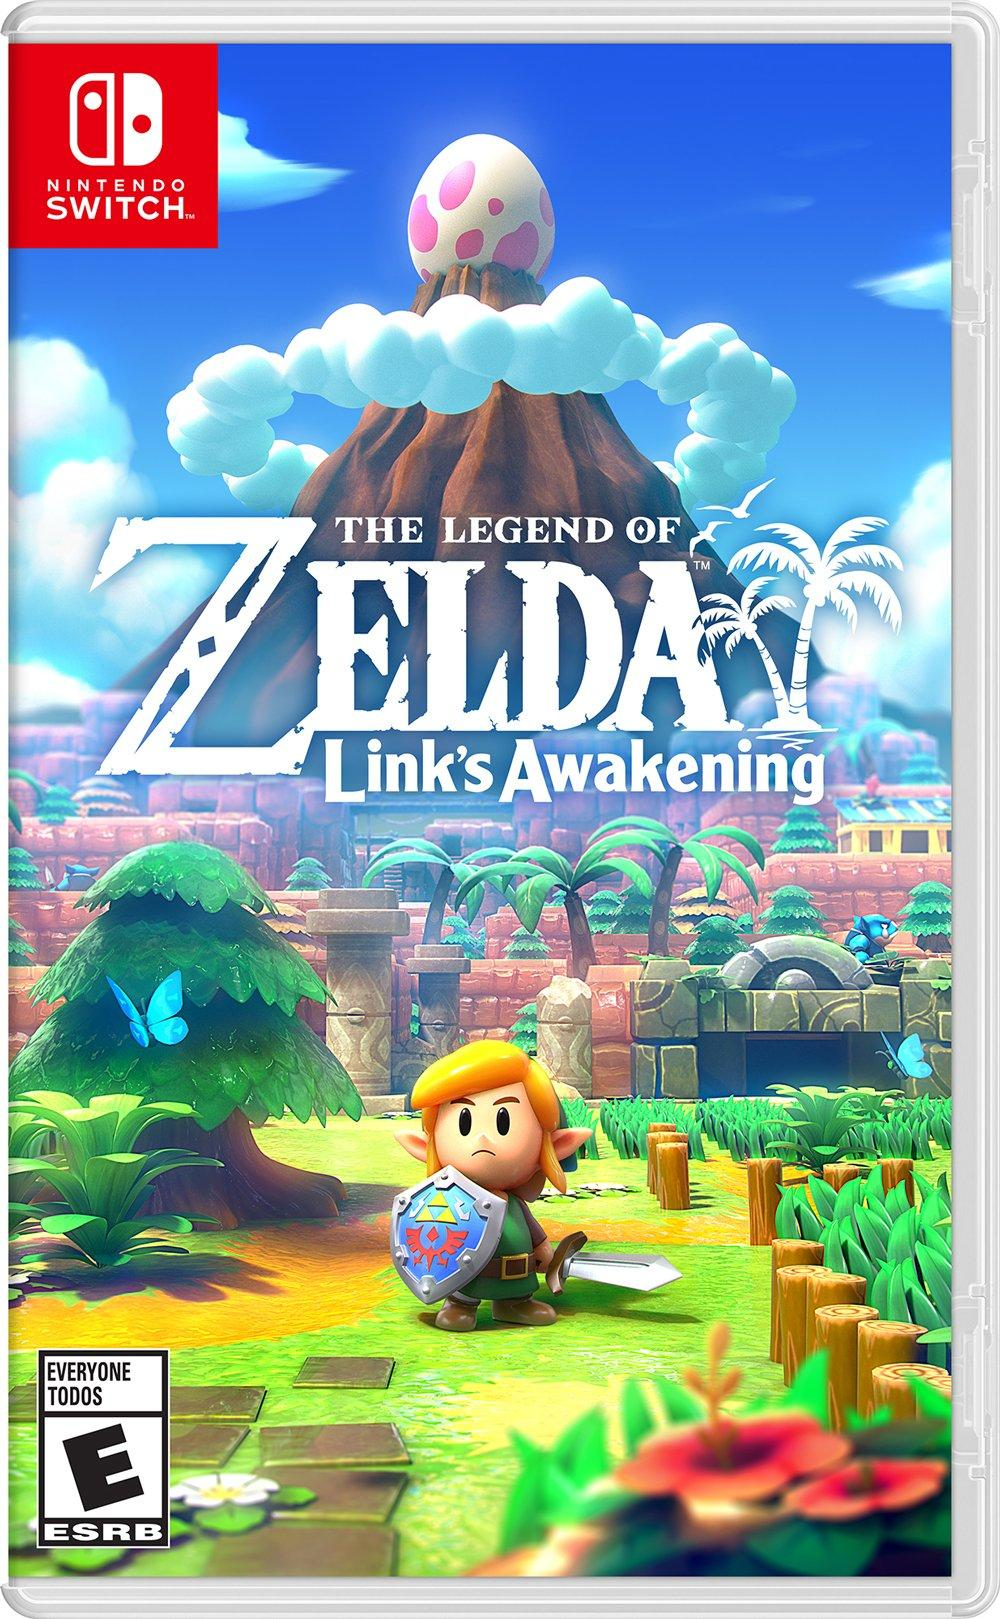 Box art - The Legend of Zelda: Link's Awakening